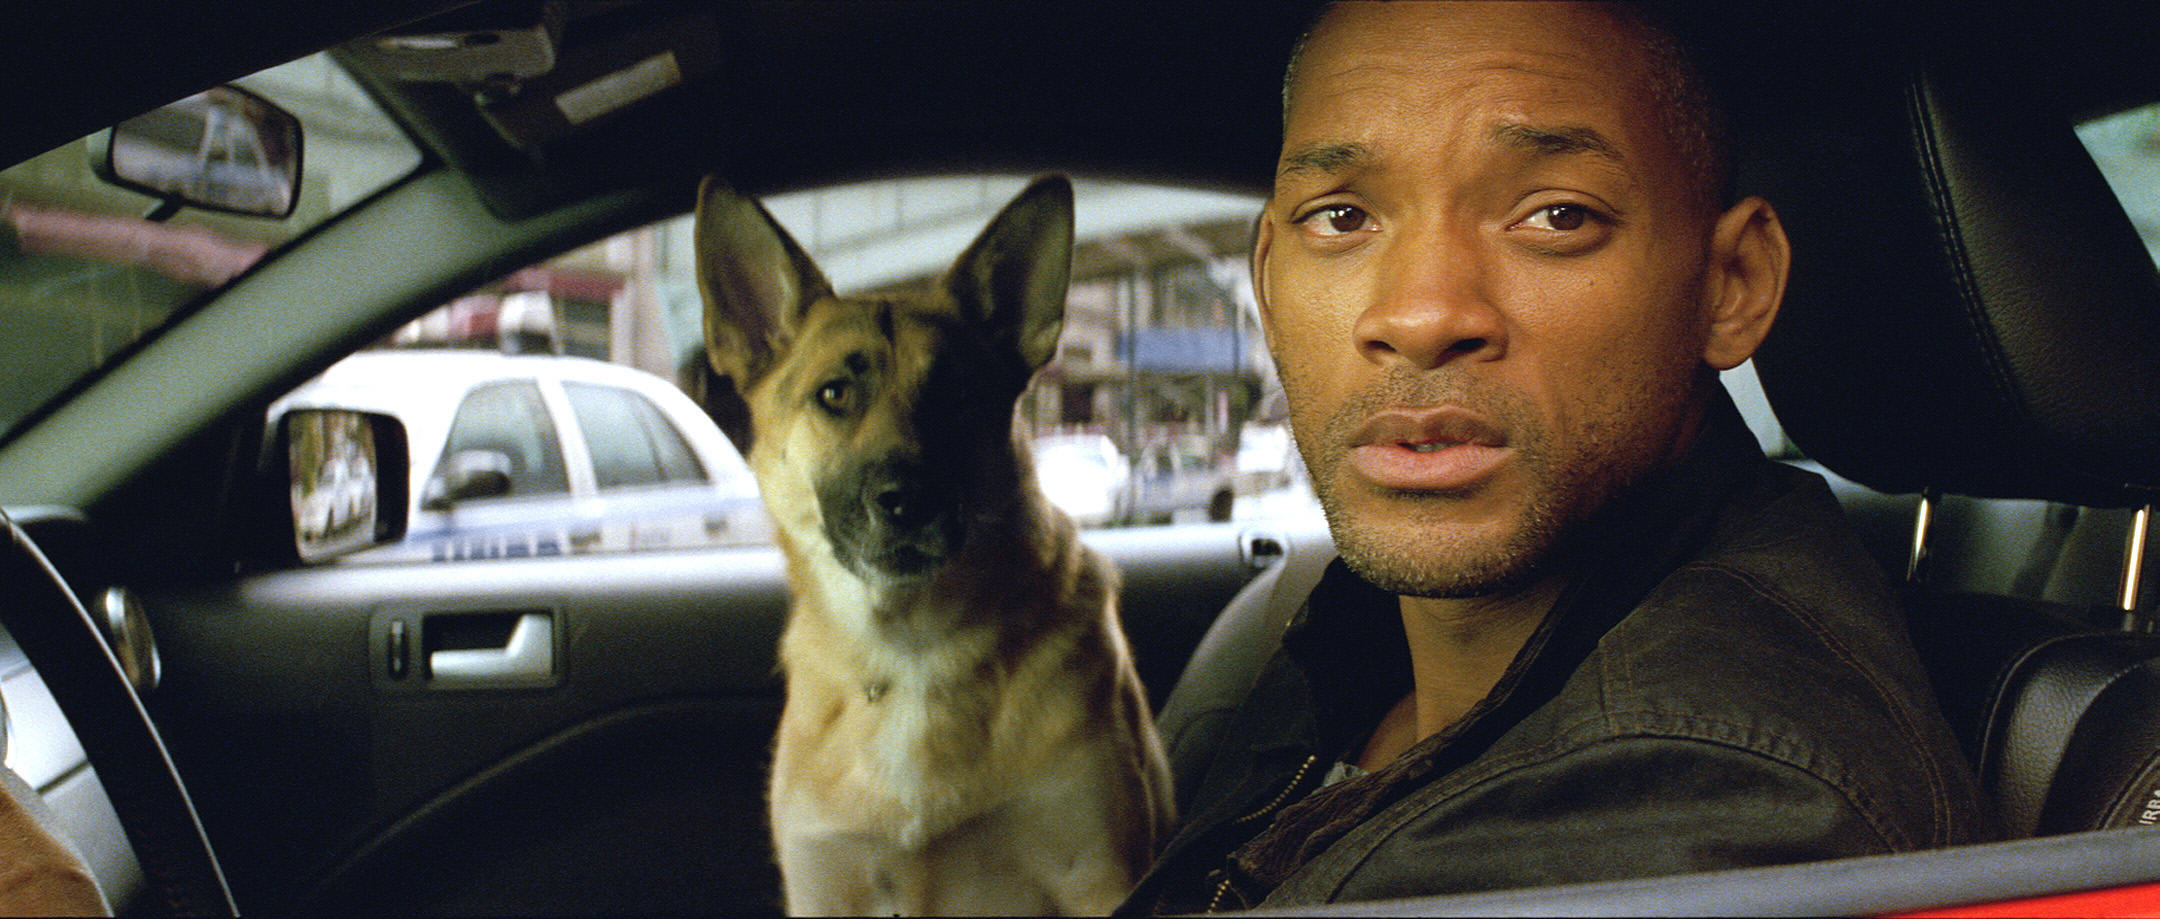 I Am Legend Movie Movie Musing: The Sadd...